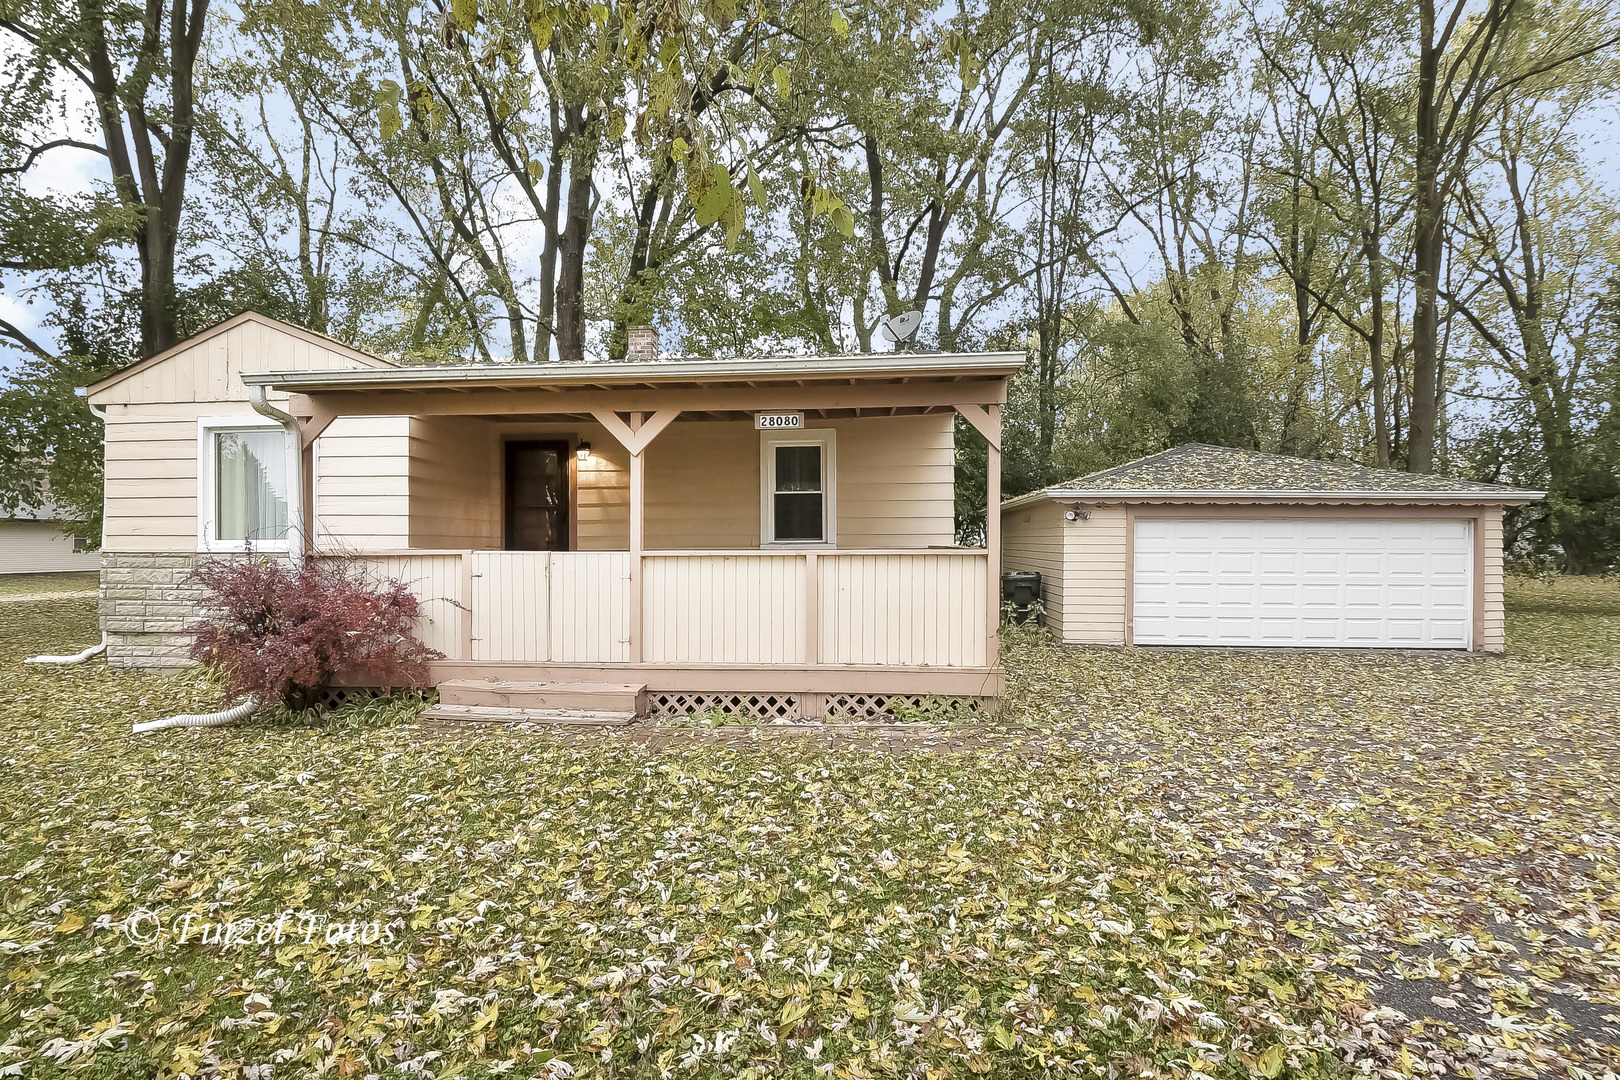 Photo for 28080 W Fox River Road, Cary, IL 60013 (MLS # 10563055)